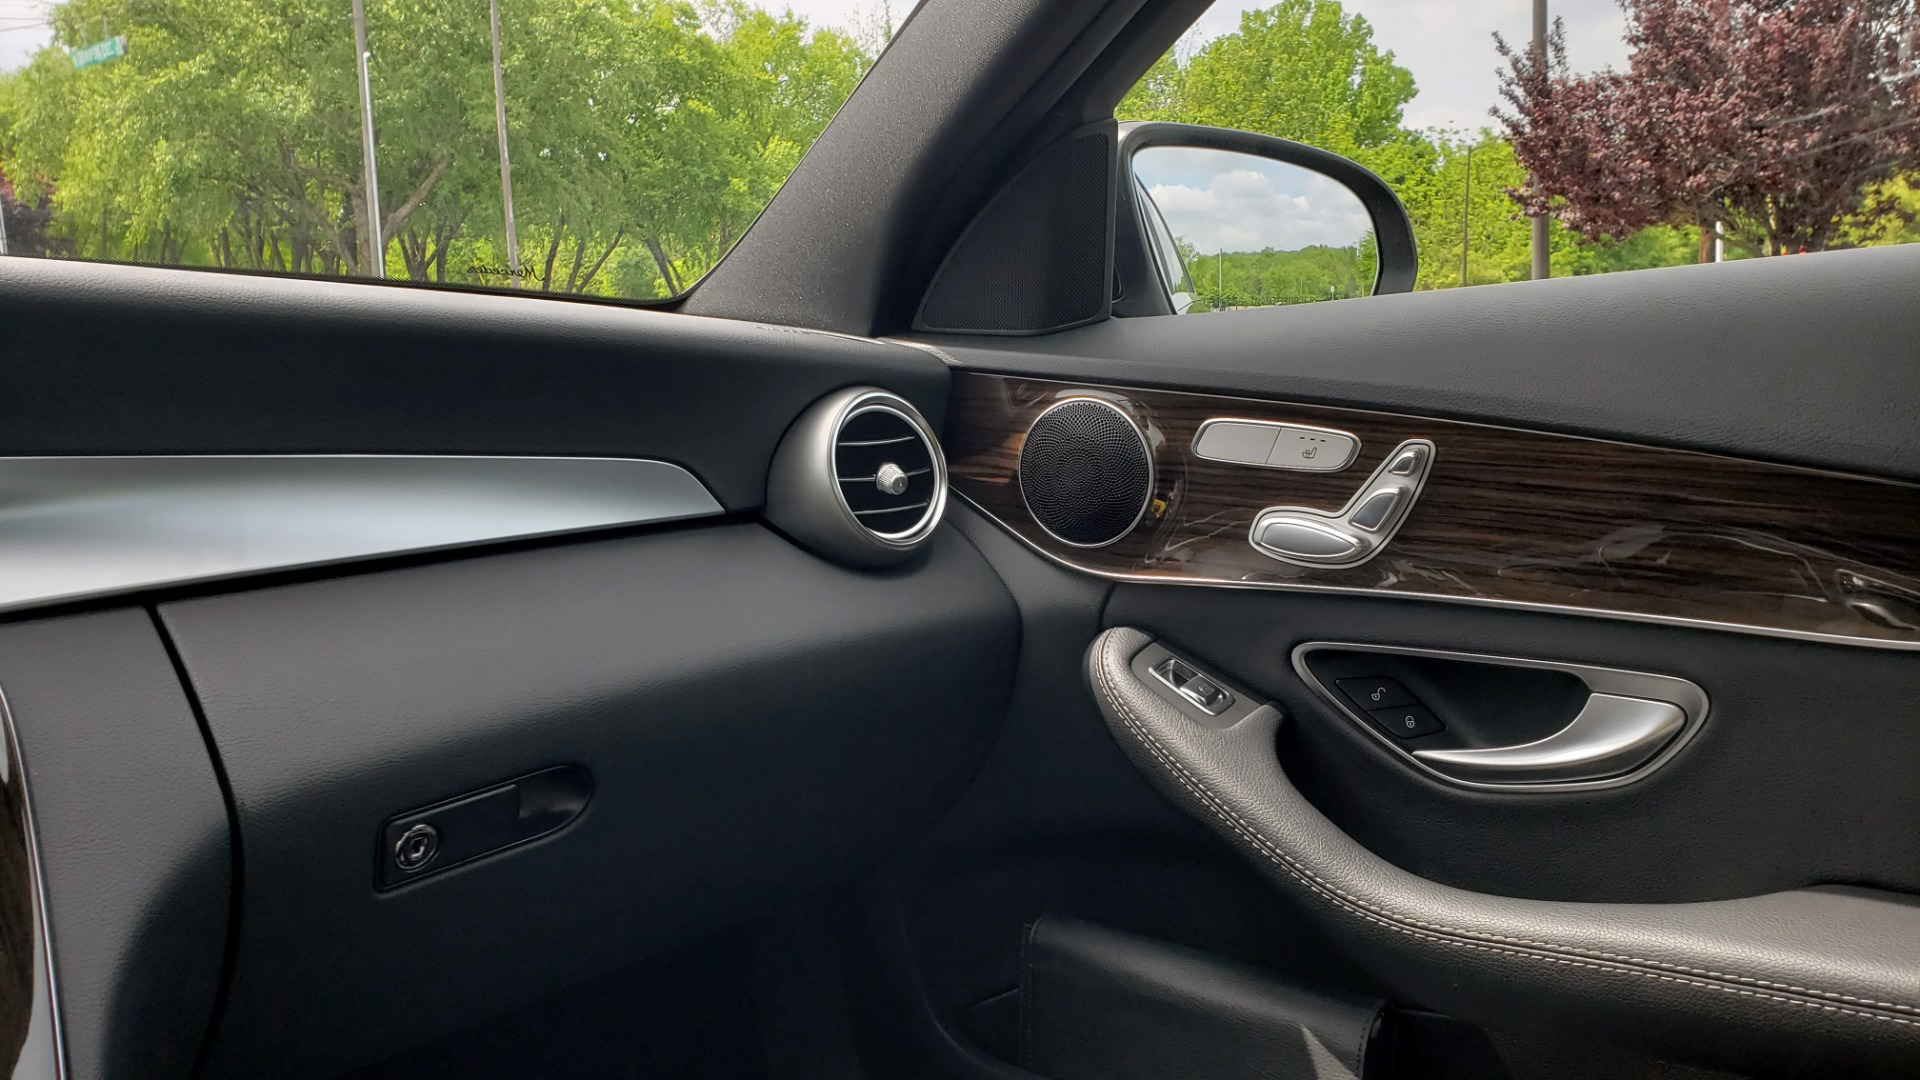 Used 2018 Mercedes-Benz C-CLASS C 300 PREMIUM / HTD STS / APPLE CARPLAY / 18IN WHEELS / REARVIEW for sale $24,795 at Formula Imports in Charlotte NC 28227 56